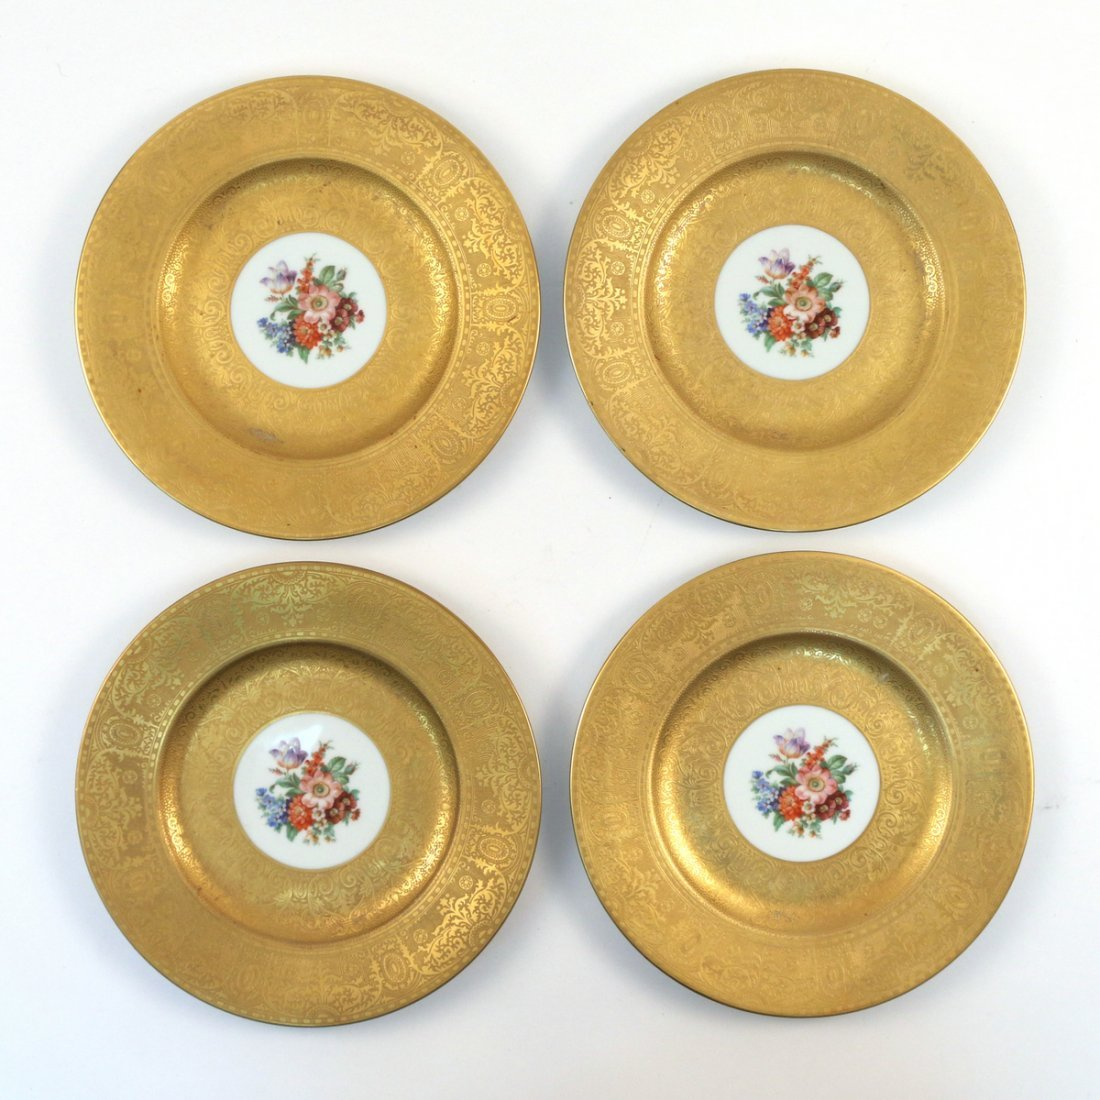 (12pc) ROYAL BAVARIAN SERVICE PLATES - 8